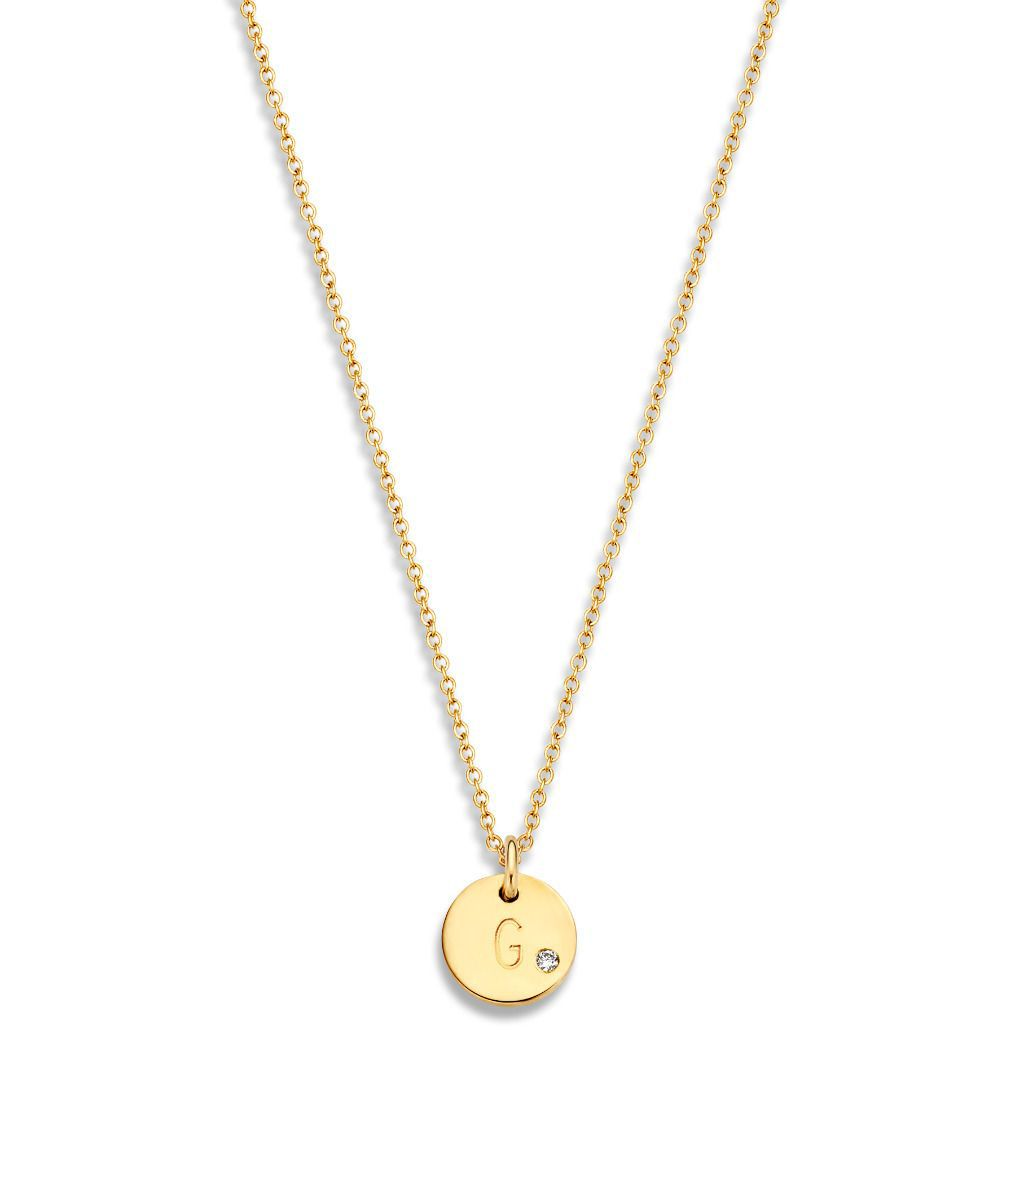 just franky coin ketting 1 diamond coin